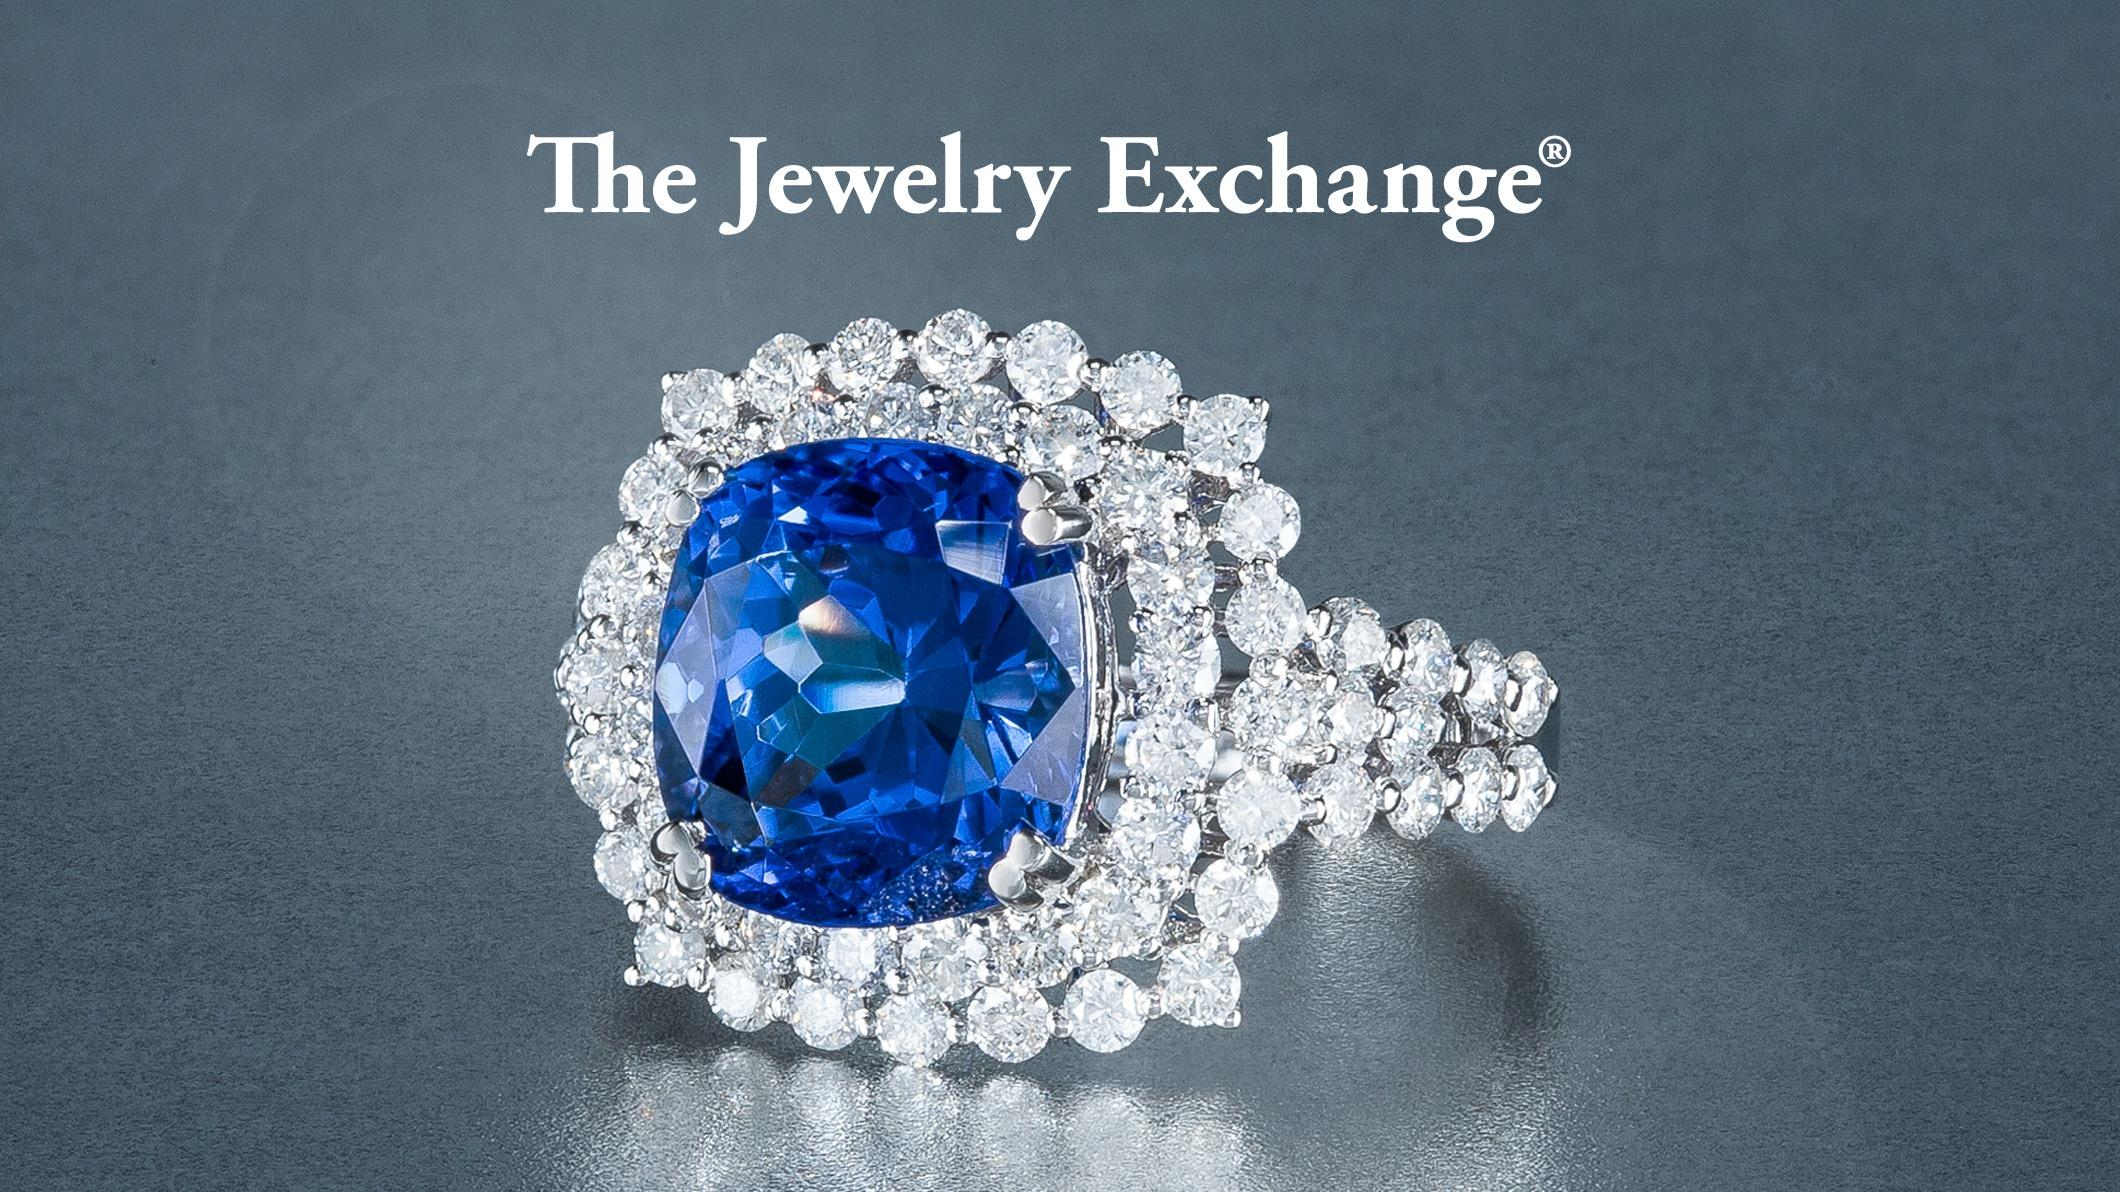 The Jewelry Exchange in New Jersey | Jewelry Store | Engagement Ring Specials image 4